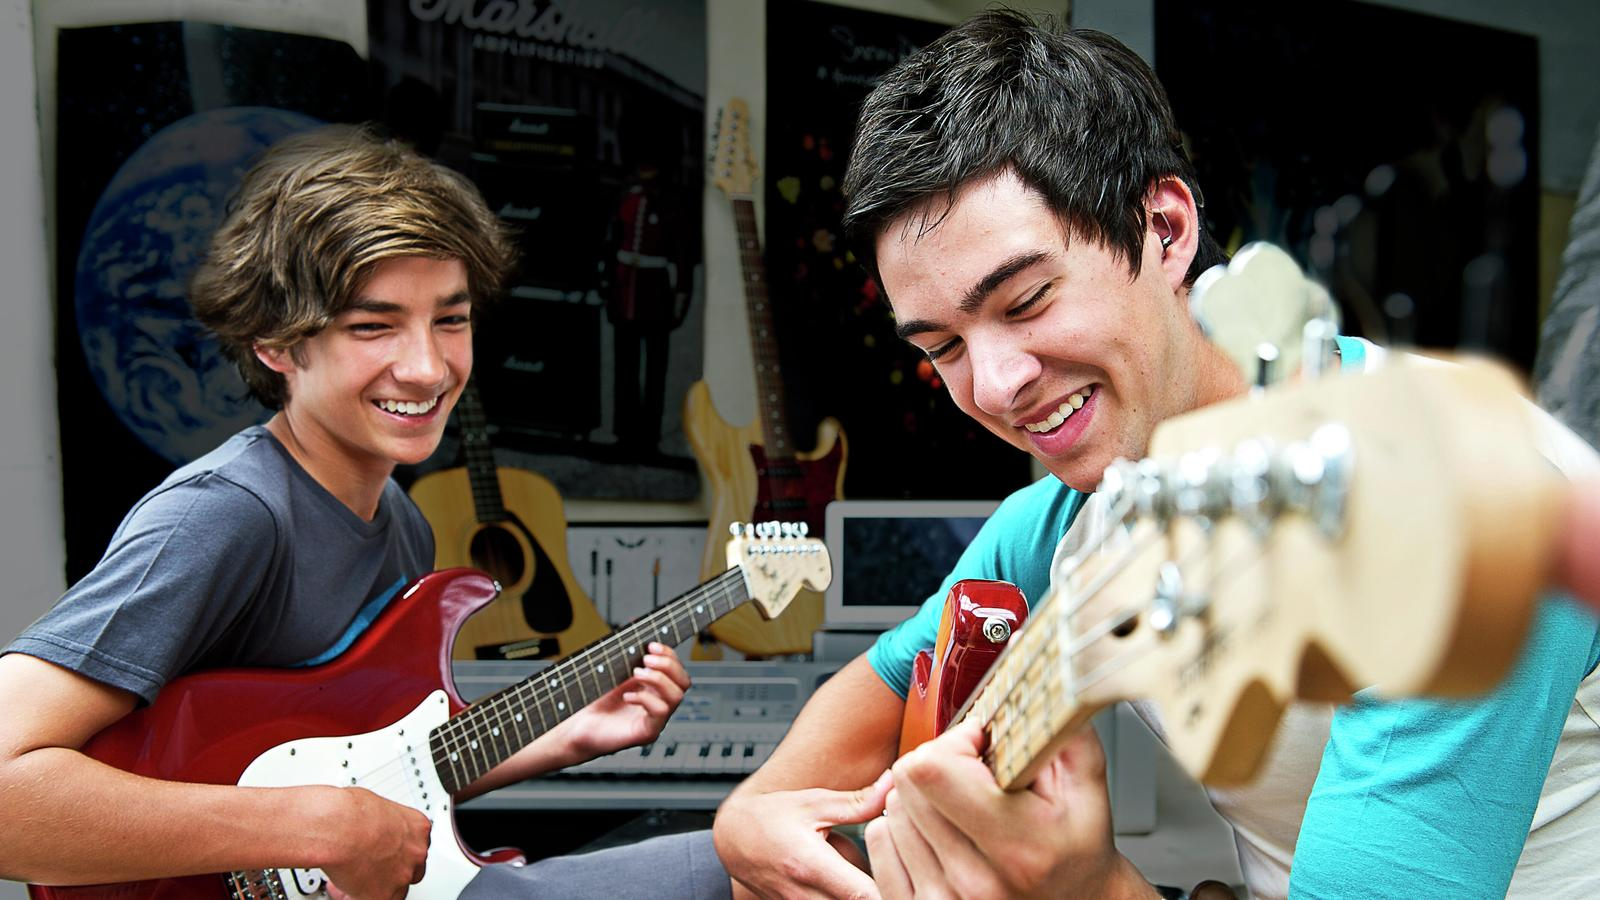 Two teenage males play electric guitar together